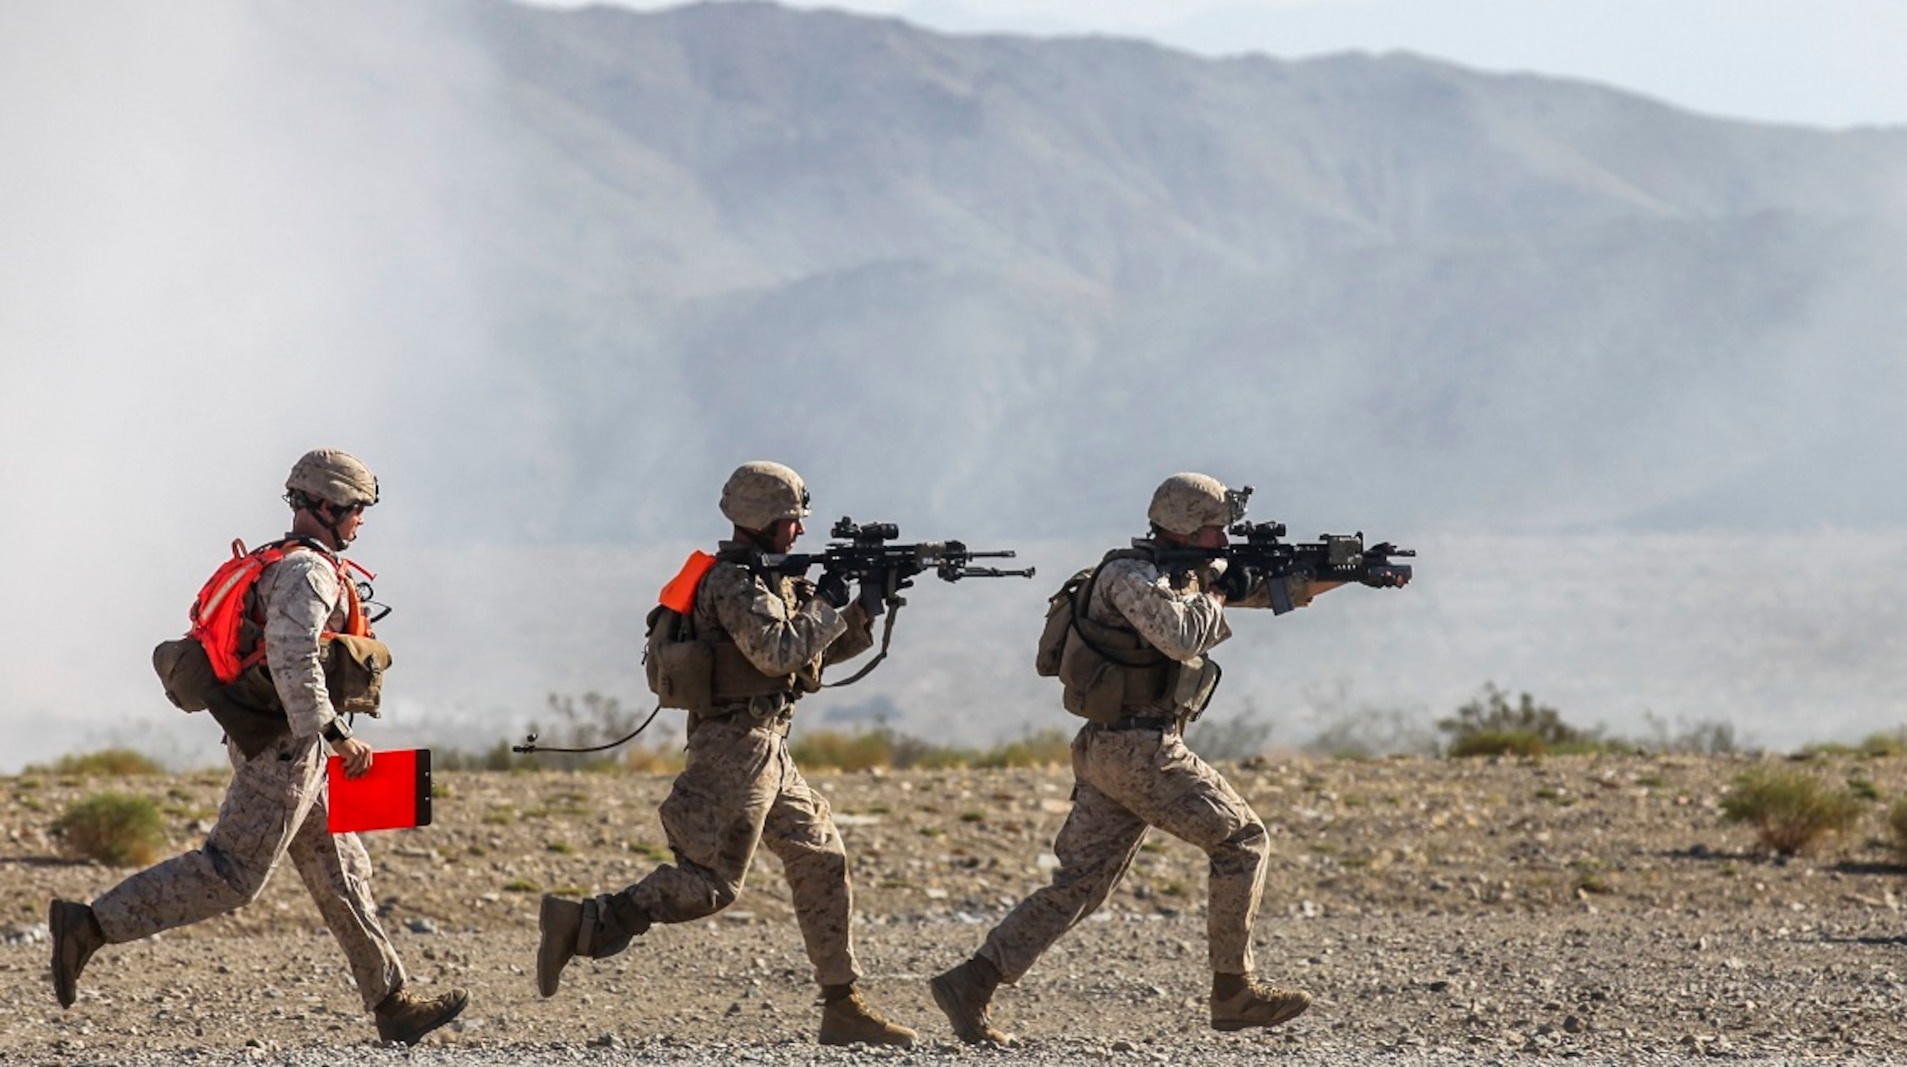 Marines with Company A, 1st Battalion, 7th Marine Regiment, rush from building to building during a Military Operation on Urban Terrain exercise aboard Marine Corps Air Ground Combat Center Twentynine Palms, California, Aug. 11, 2015. The MOUT exercise was part of an Integrated Training Exercise that allowed the Marines with Animal Company to showcase their different capabilities in preparation for future deployments.